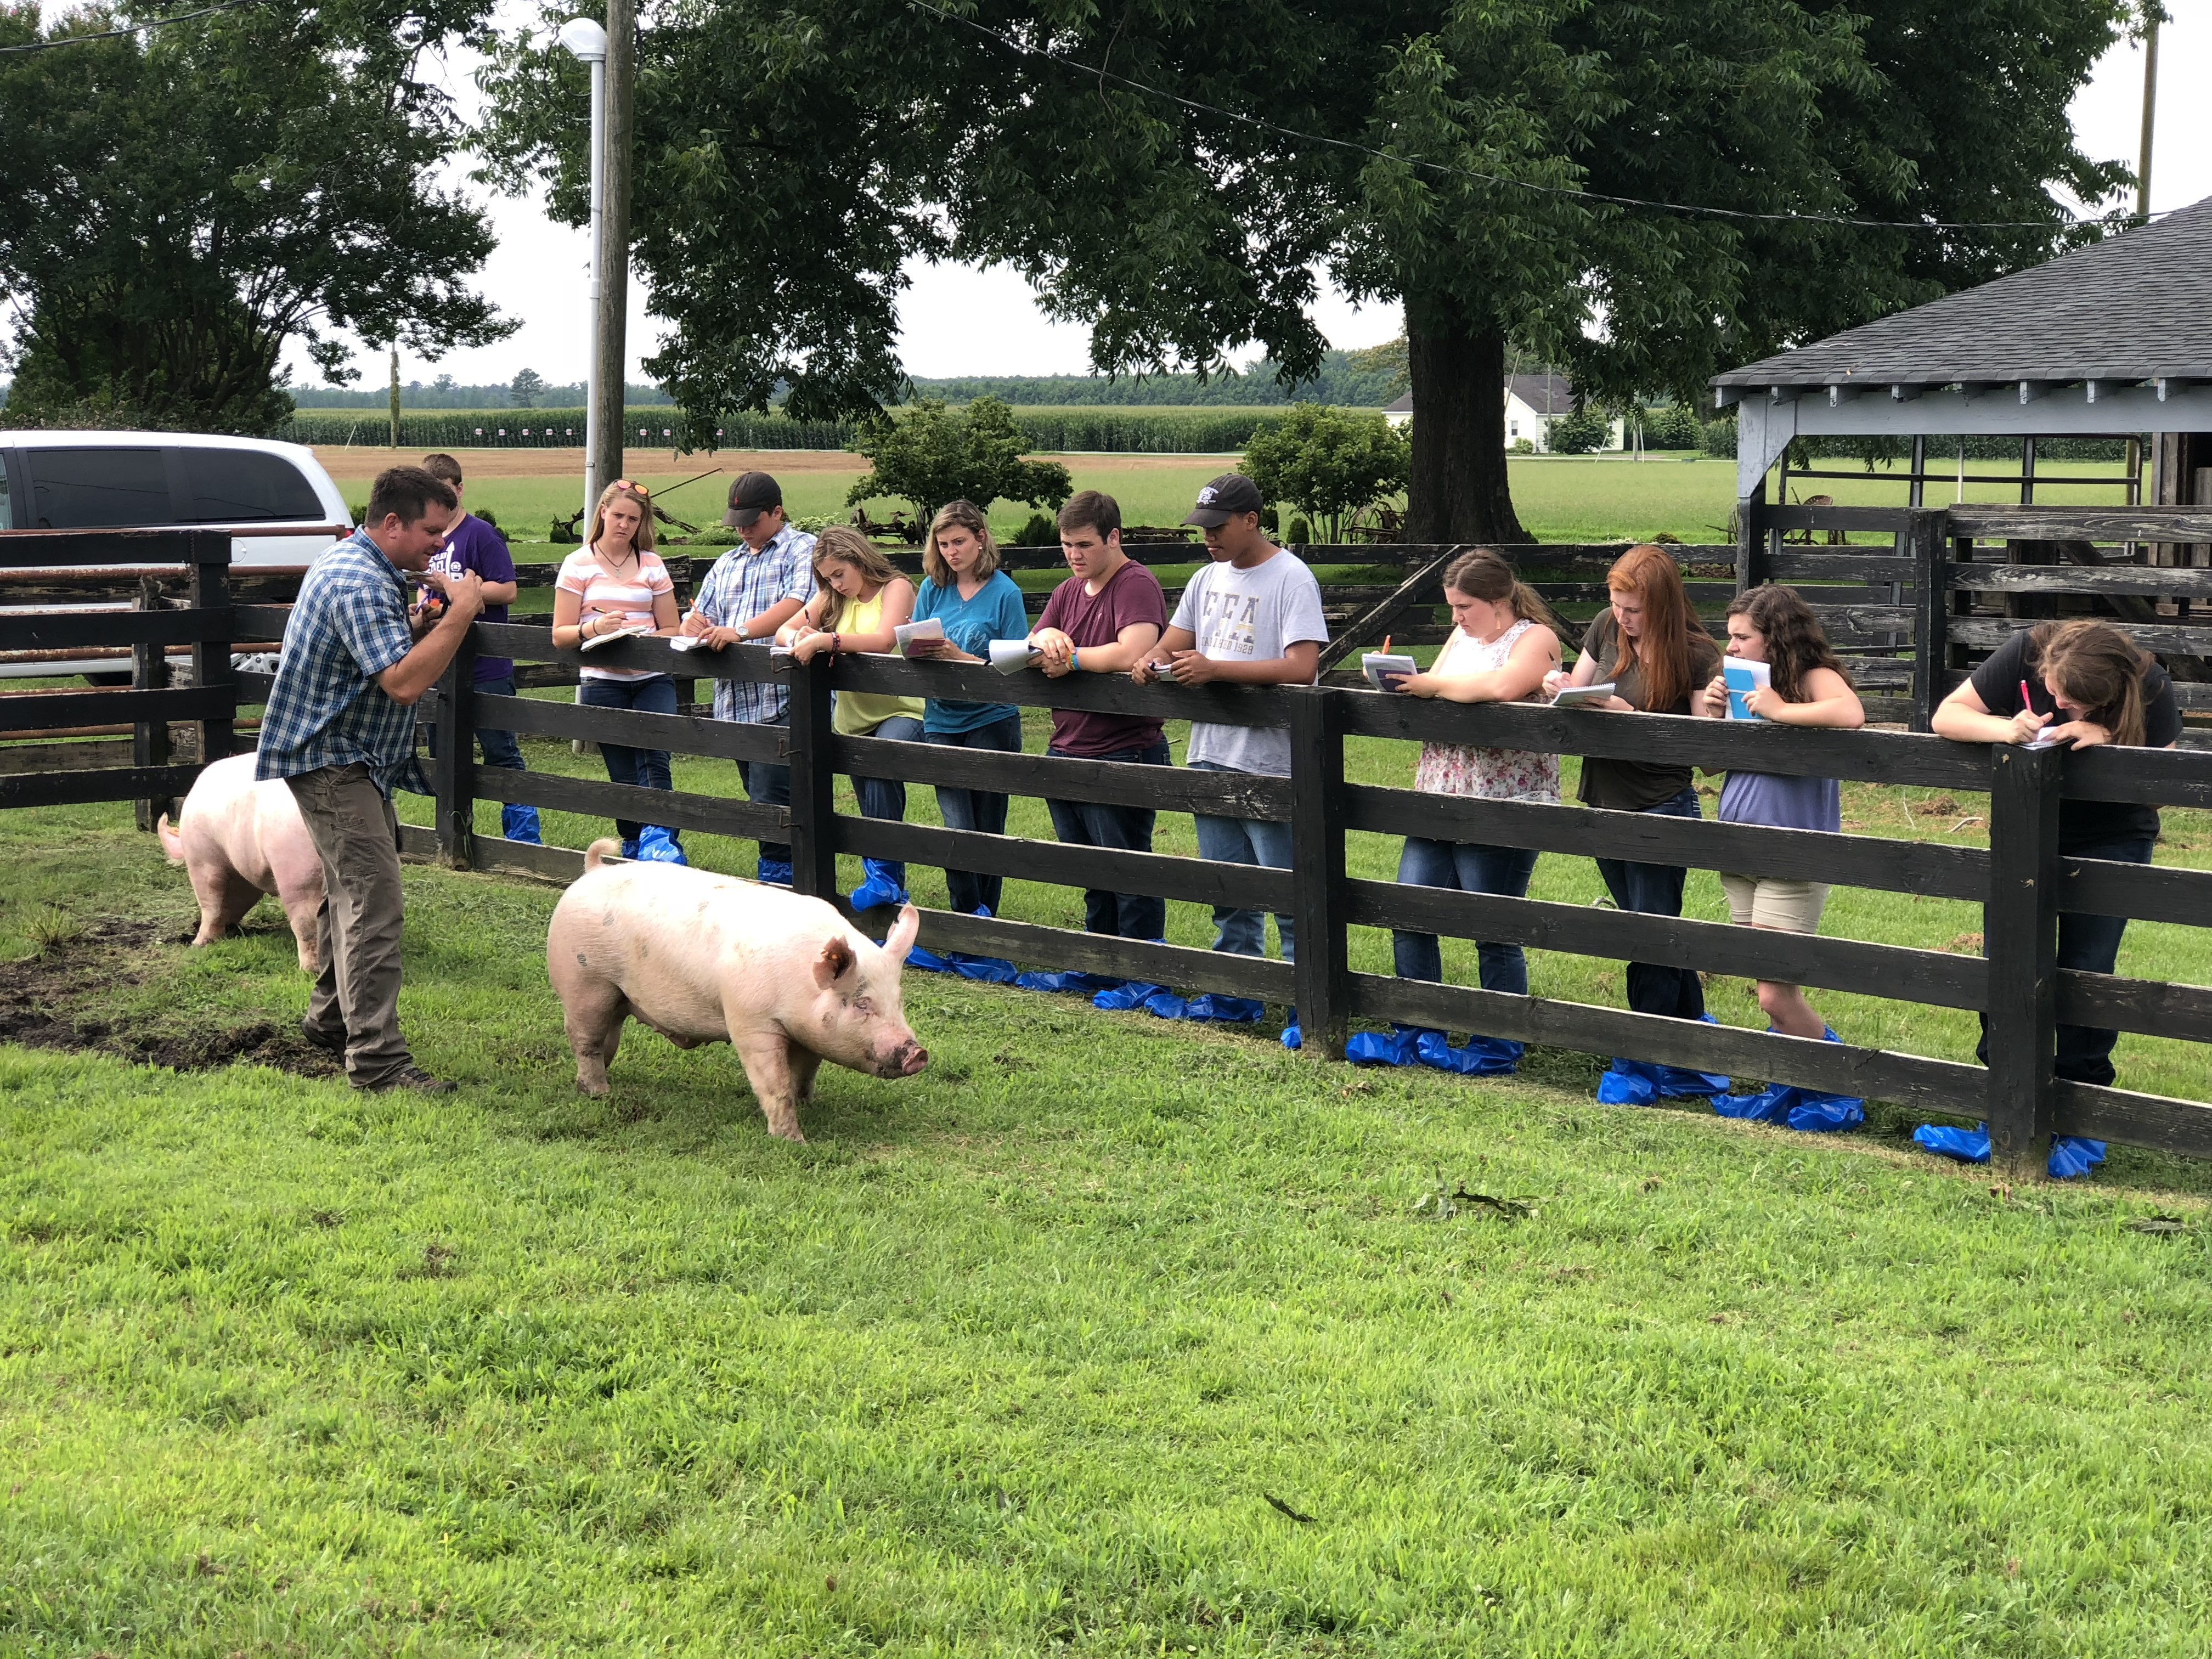 youth judging pigs